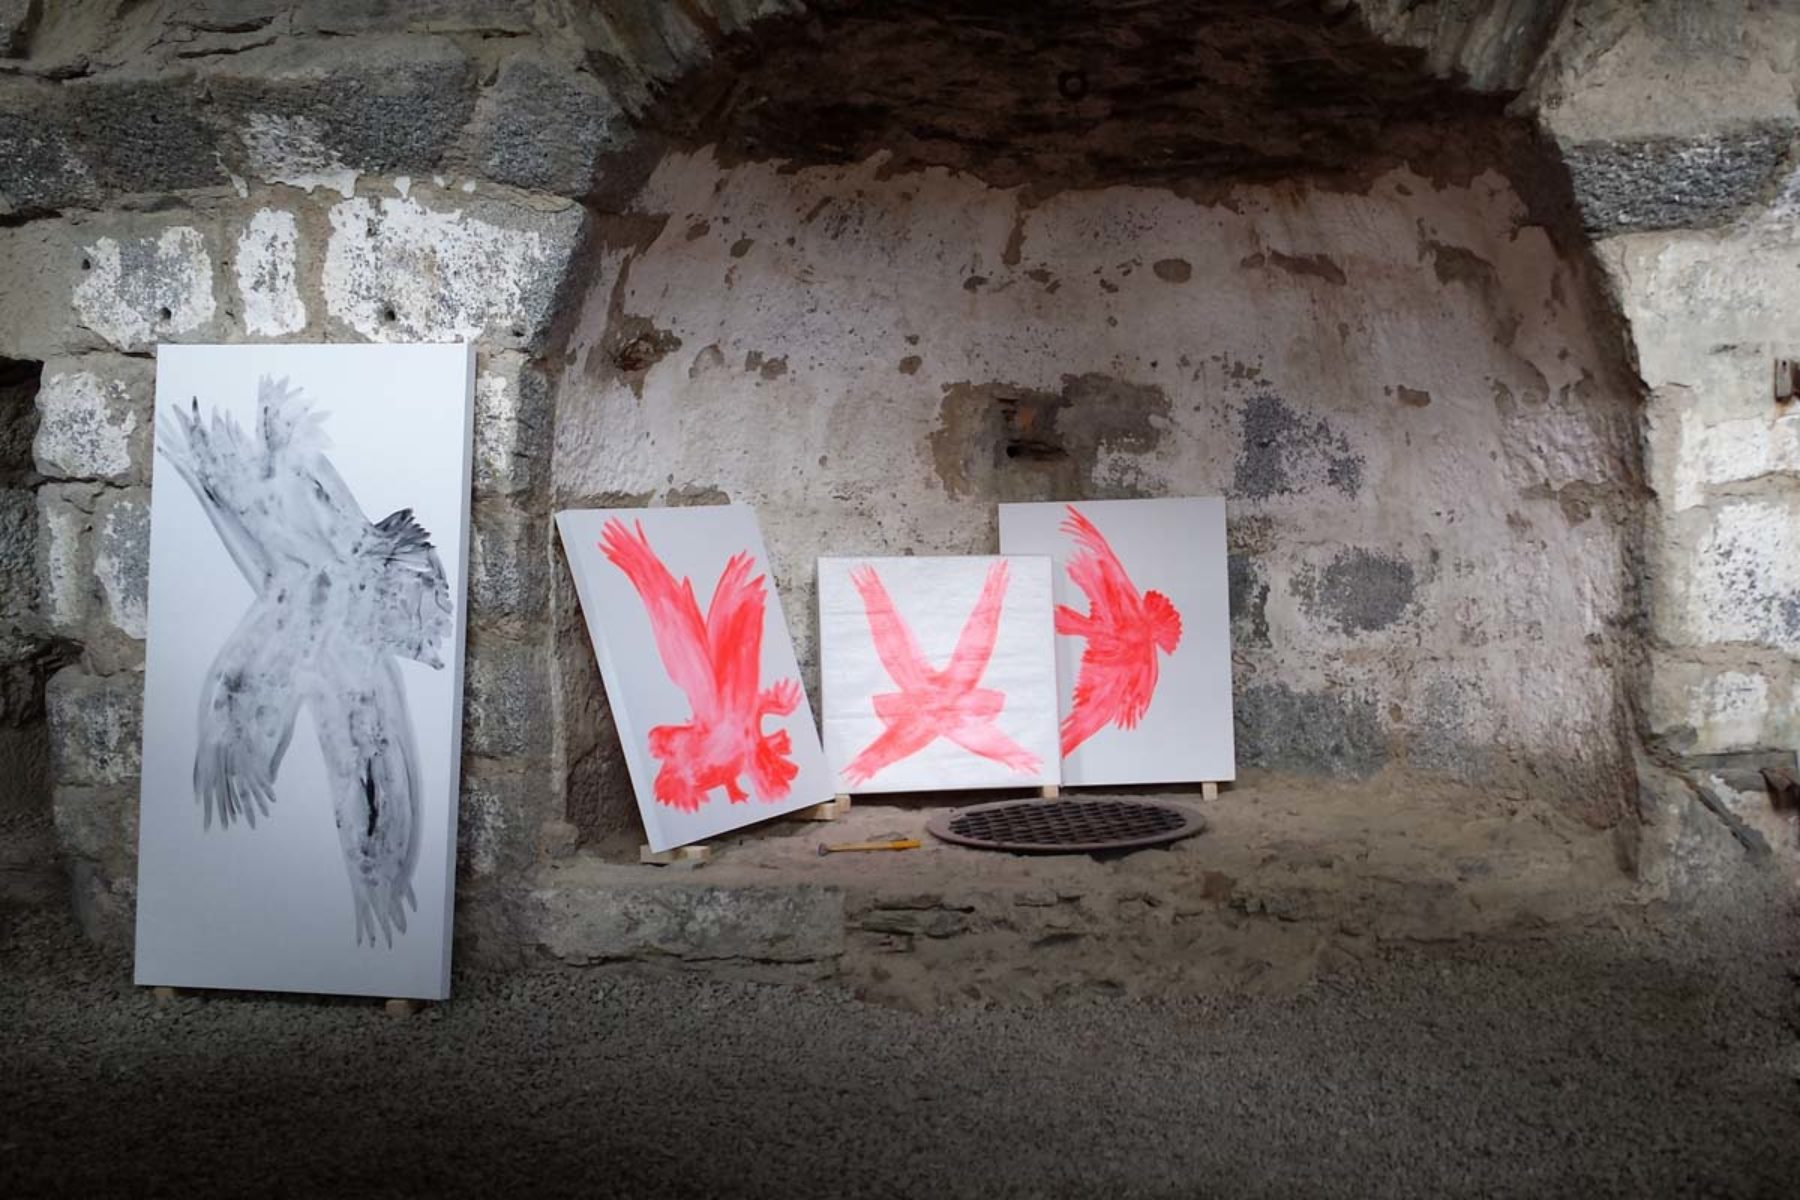 F. Lanaro, An eagle has not flag, 2013, installation view